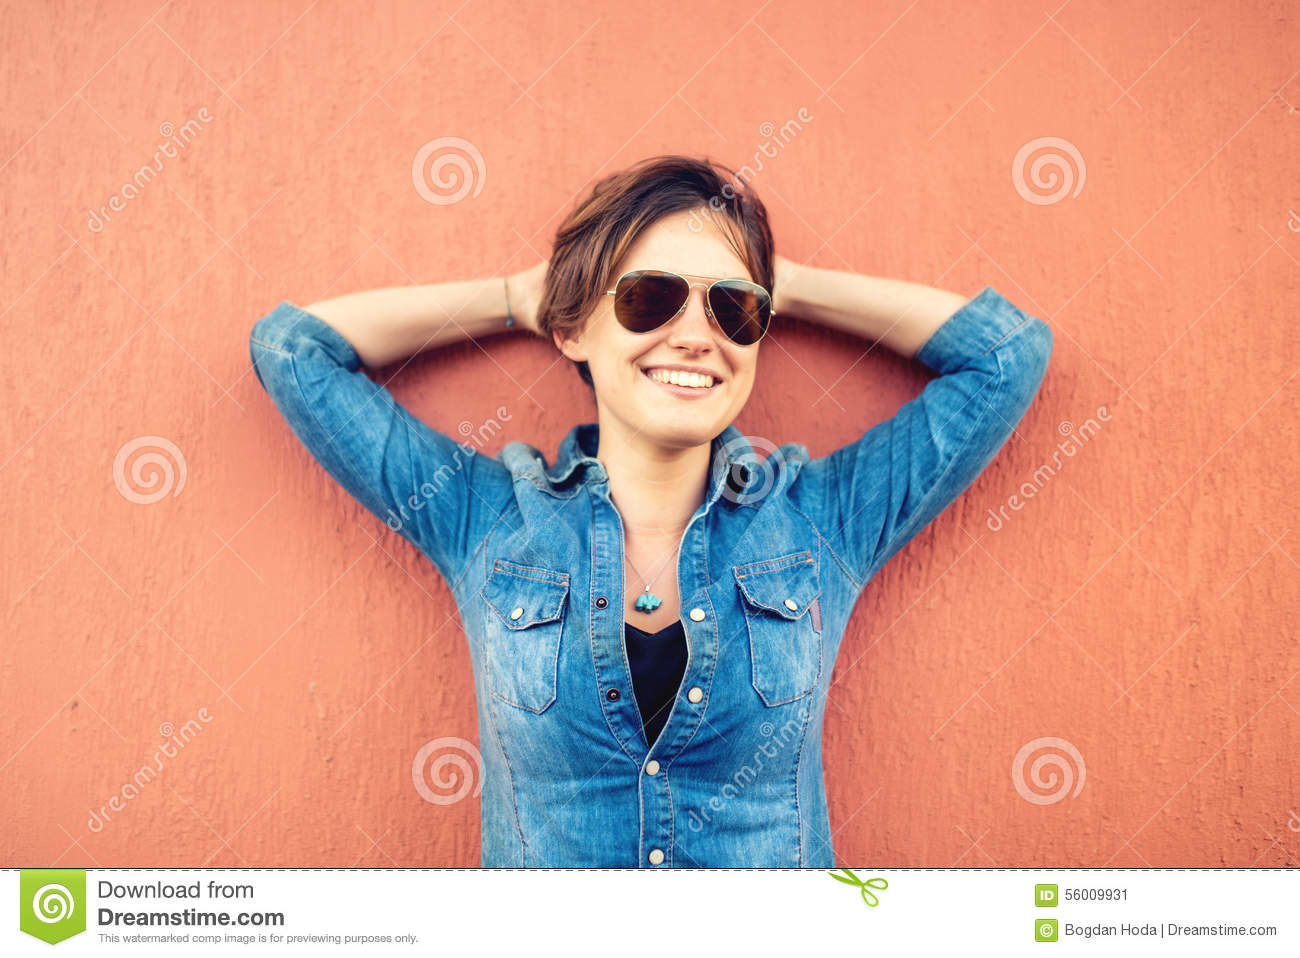 Trendy brunette girl, making face expressions, smiling and laughing against orange background, isolated. Modern lifestyle